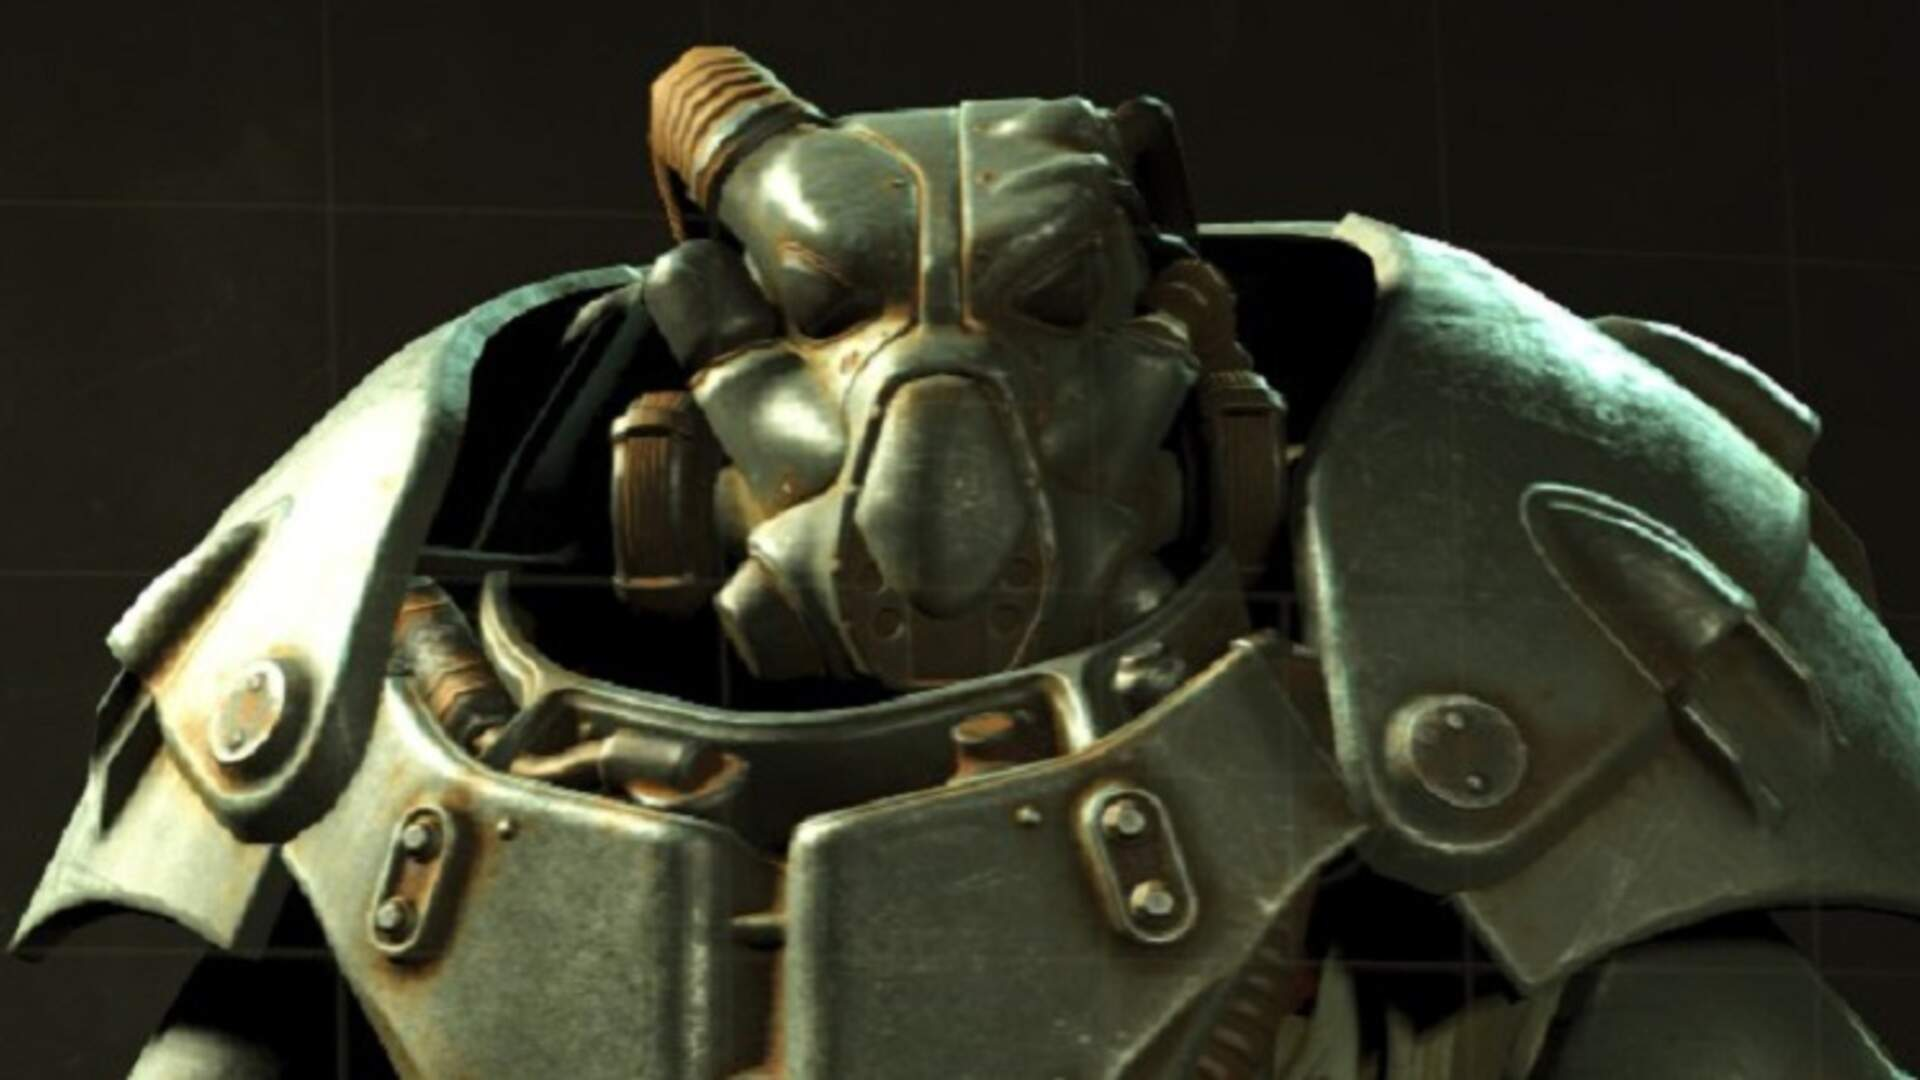 Fallout 4: Best Power Armor - How to Get the X-01